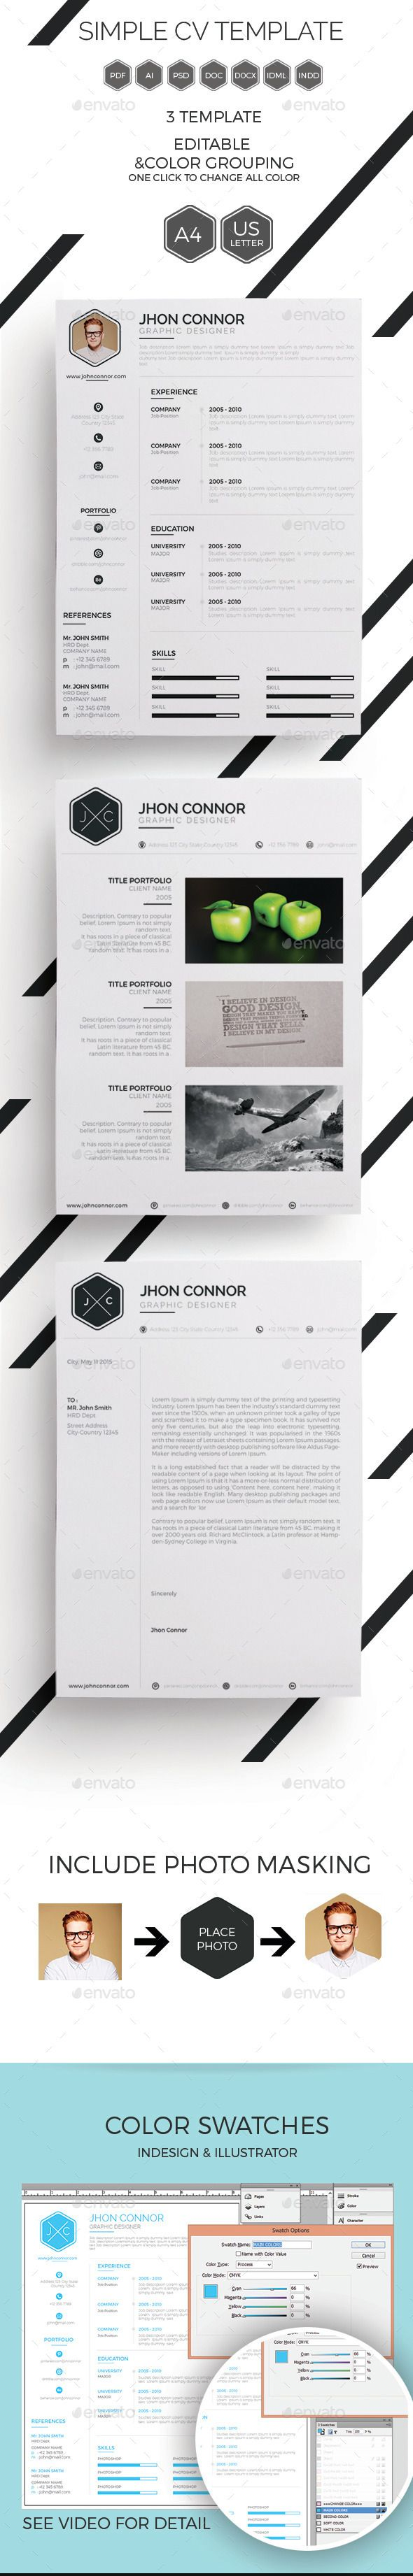 best ideas about simple cv template simple cv simple cv template